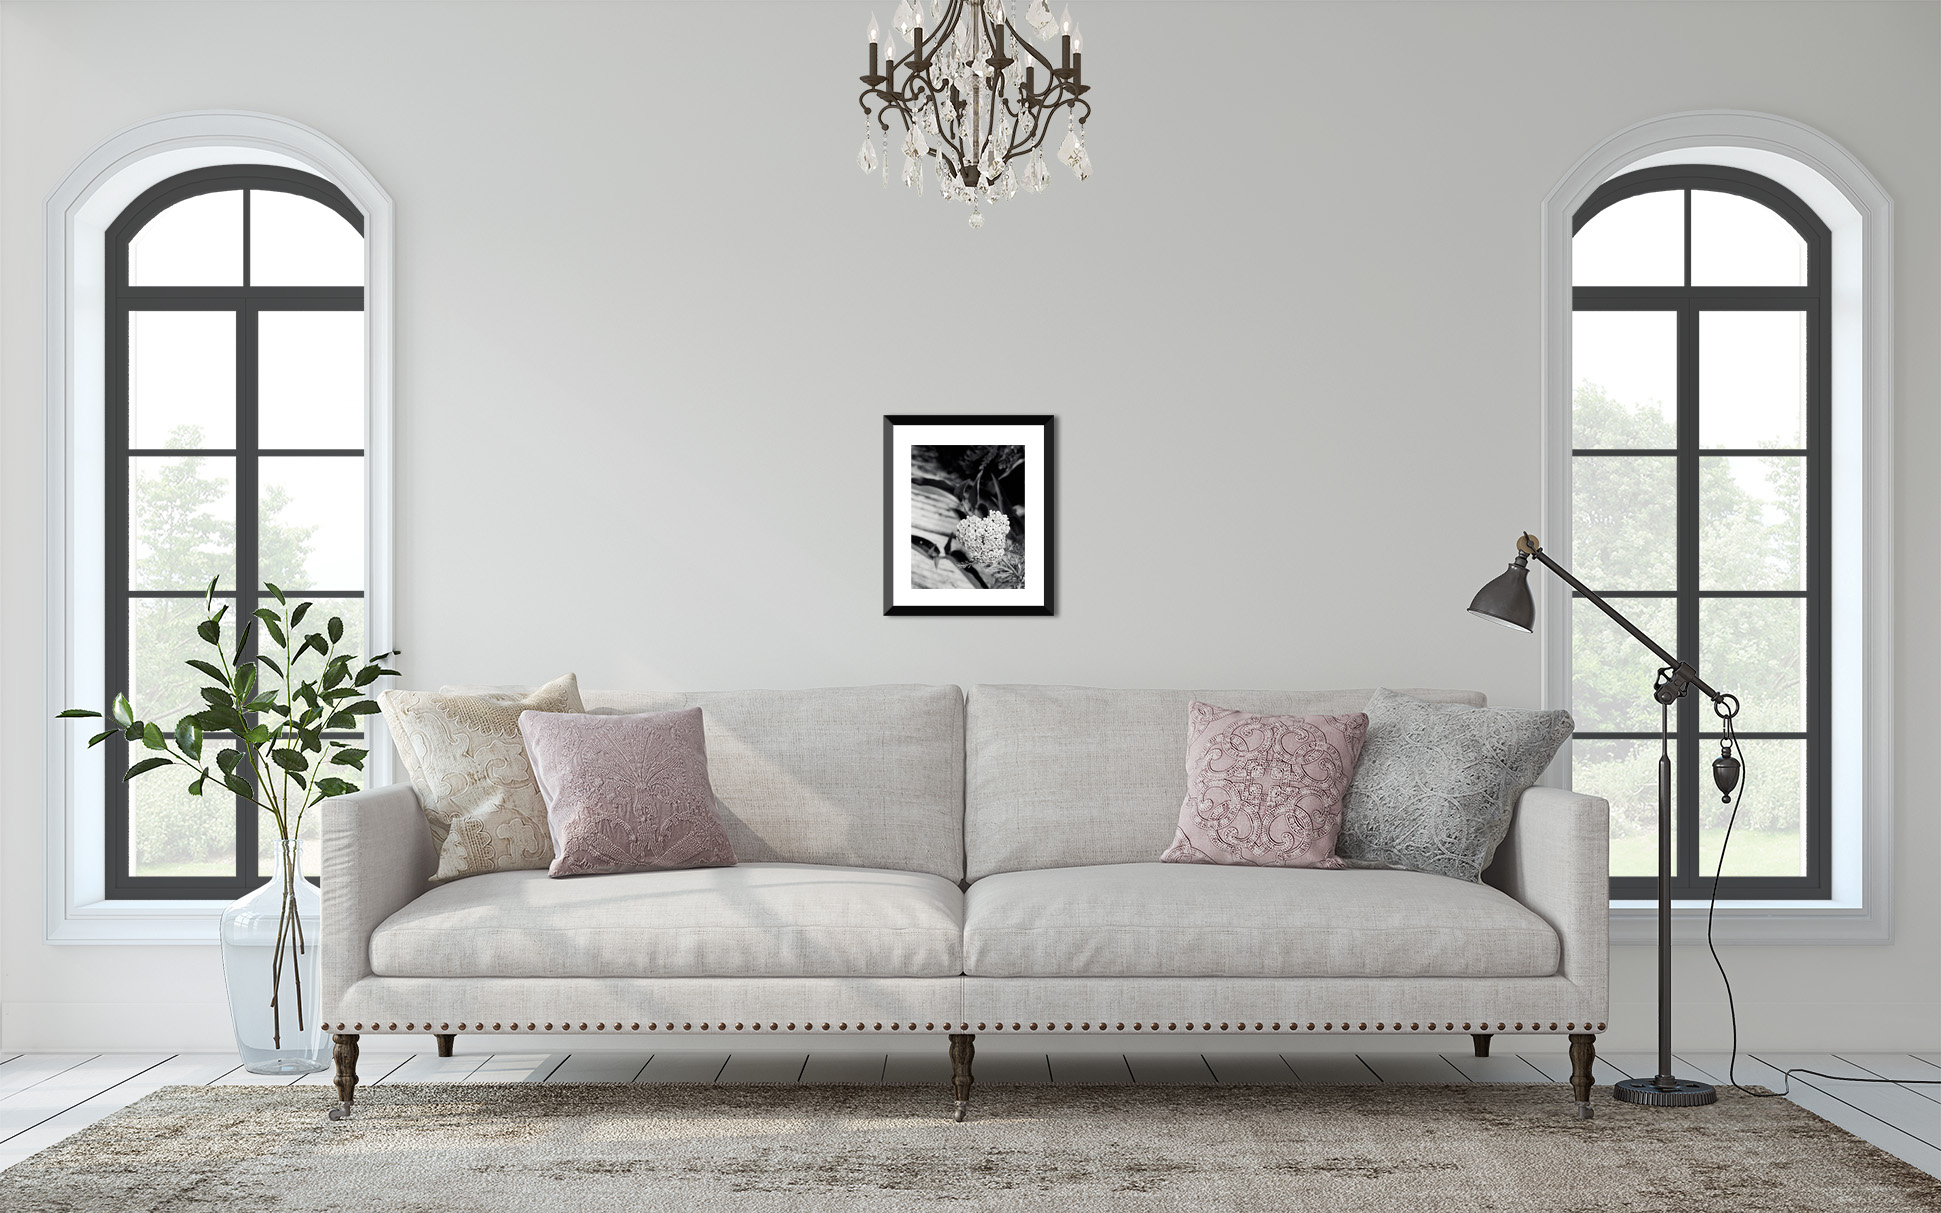 Display of Metallic Photographic Print, Monochrome, Black and White, Astillbe My Heart by Tonya M. Brill, Artist and Photographer